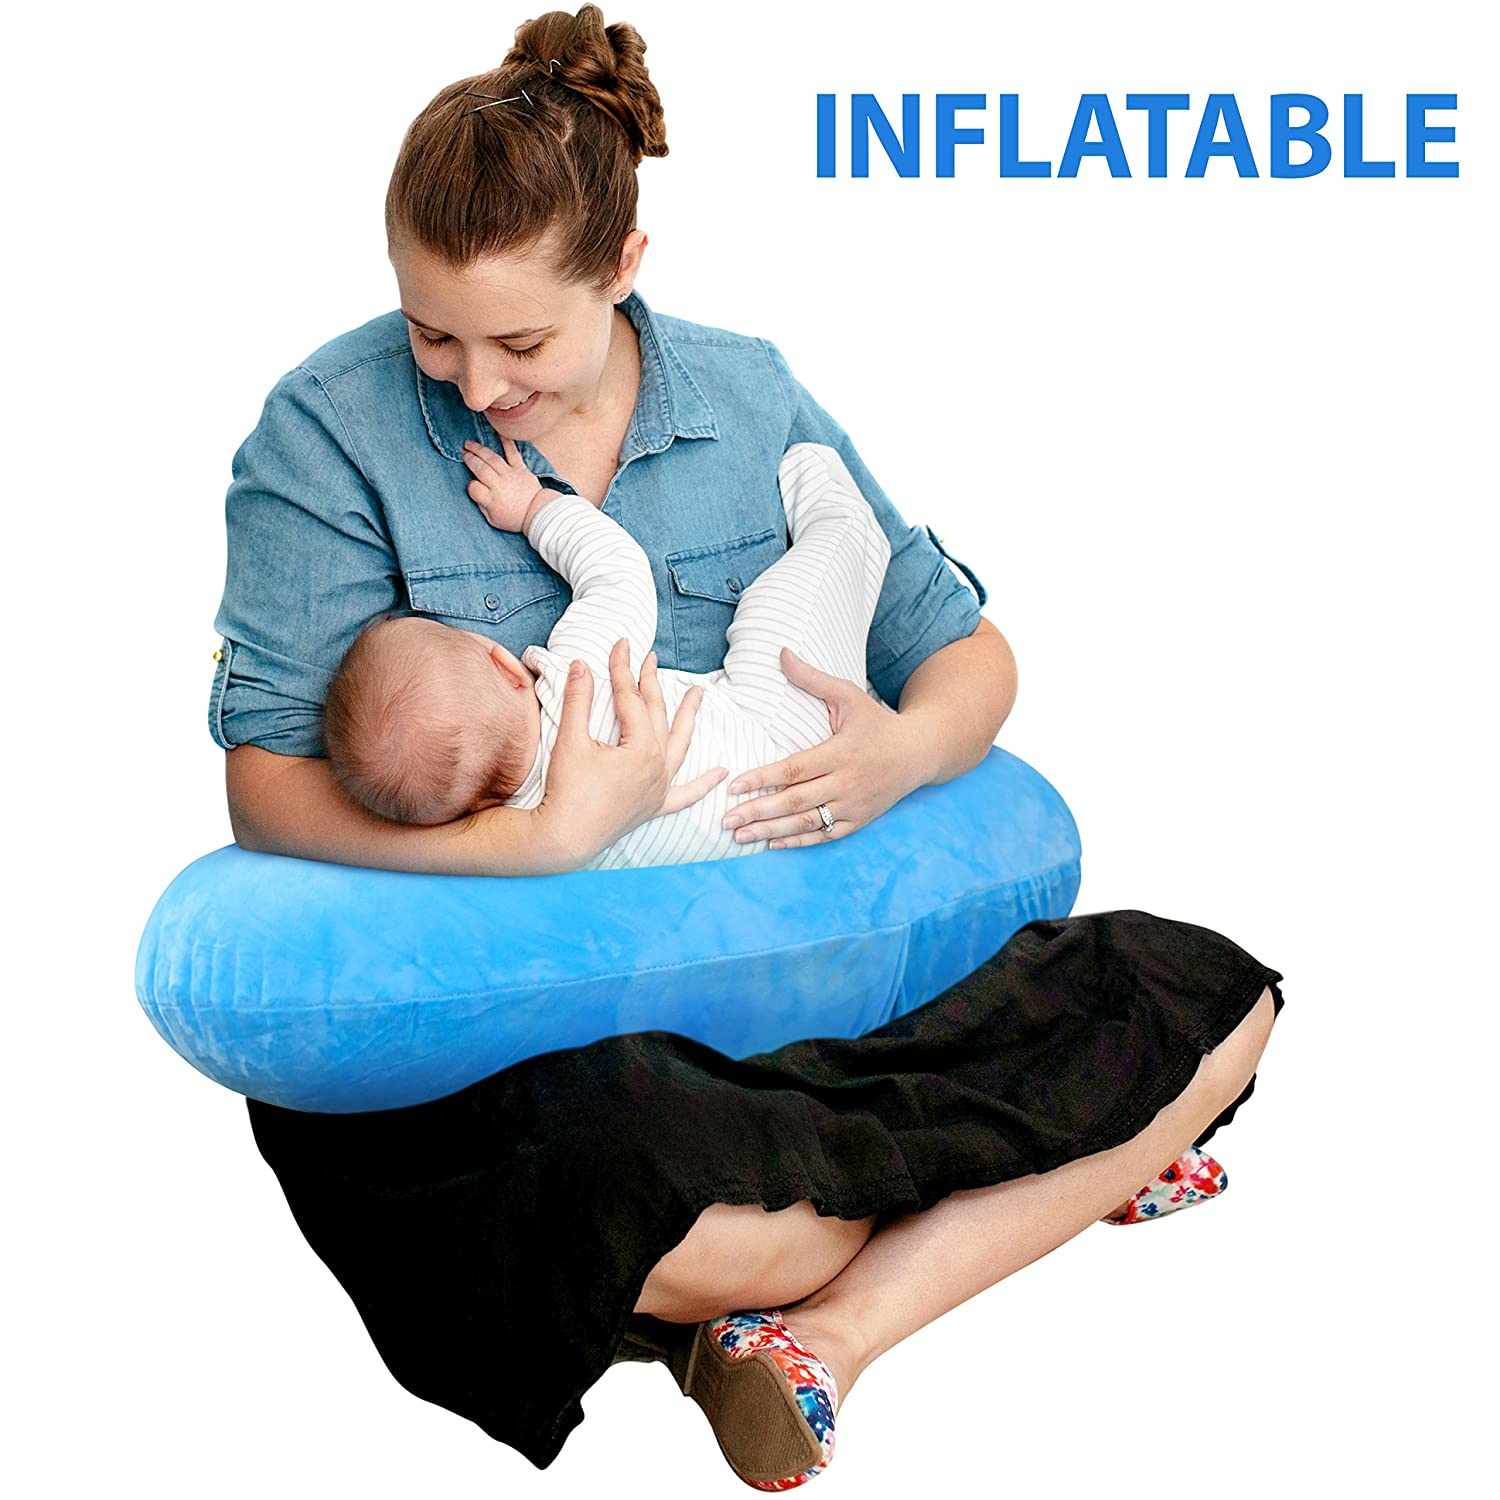 The Original Inflatable Nursing Pillow with Slipcover: Portable Breastfeeding Support Cushion with Removable Plush Minky Cover - Compact Breast Feeding Pillow for Traveling - No More Sore Muscles! Royexe 0793 Grey